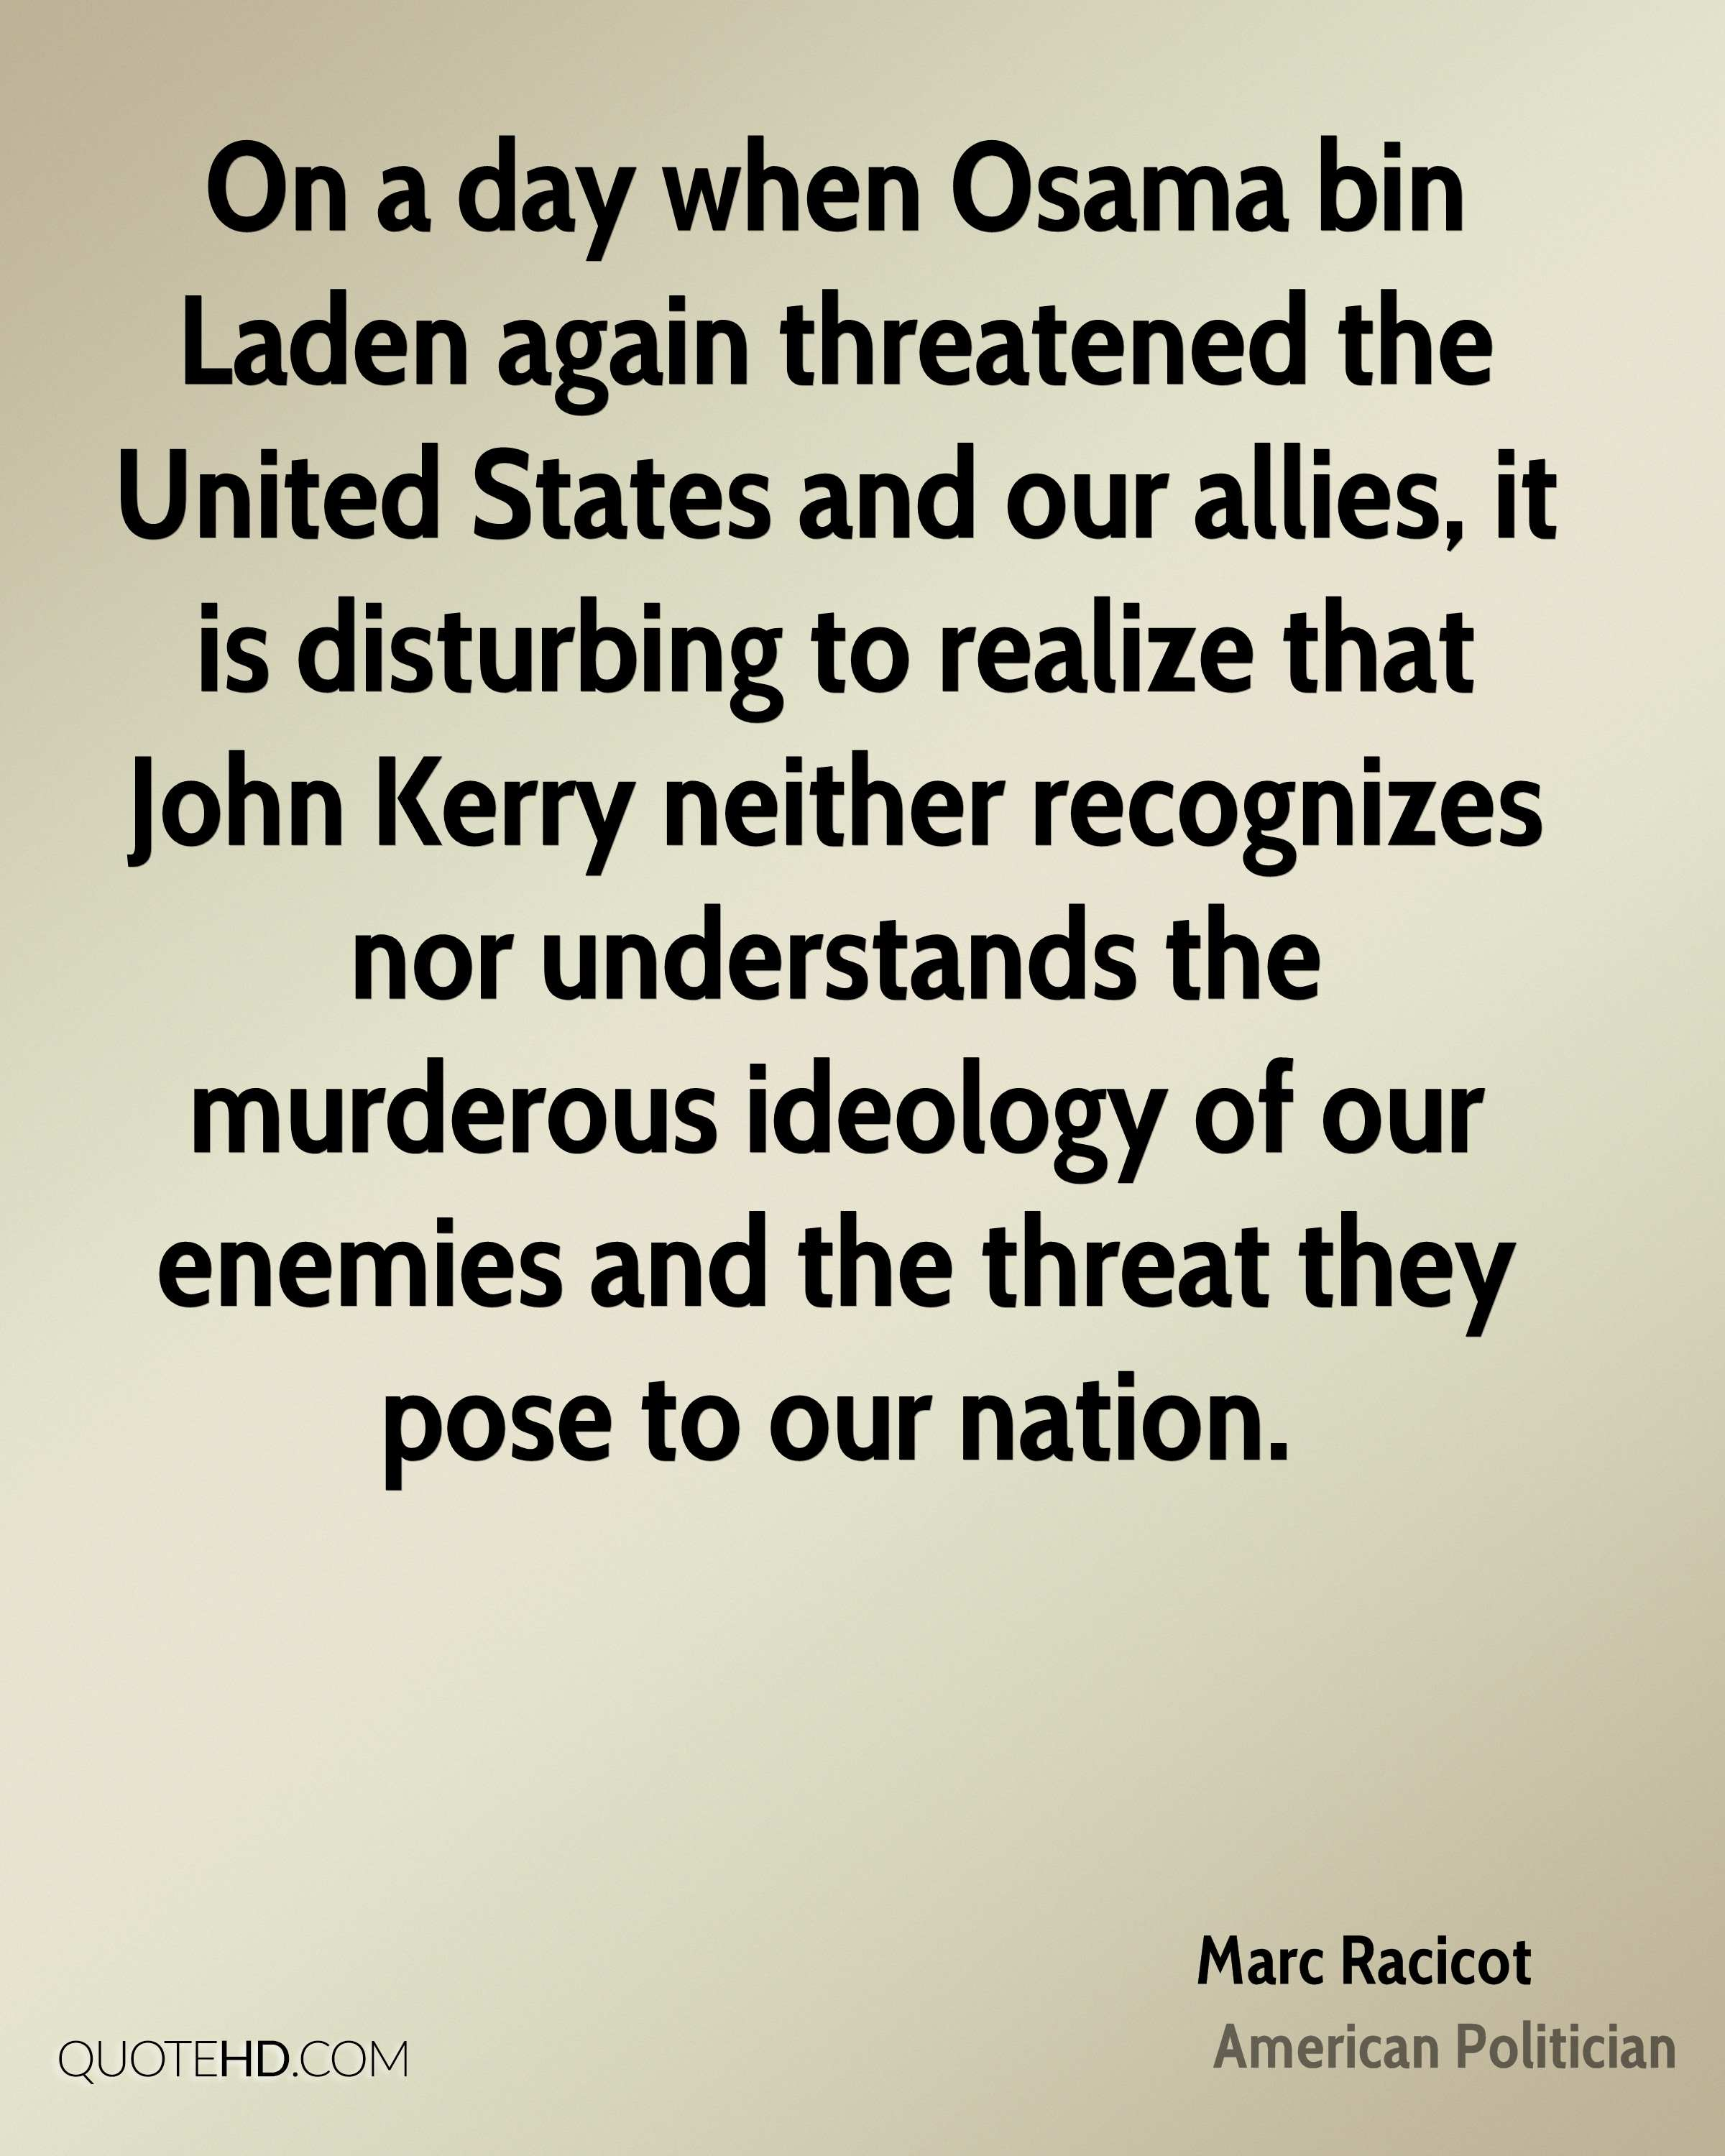 On a day when Osama bin Laden again threatened the United States and our allies, it is disturbing to realize that John Kerry neither recognizes nor understands the murderous ideology of our enemies and the threat they pose to our nation.